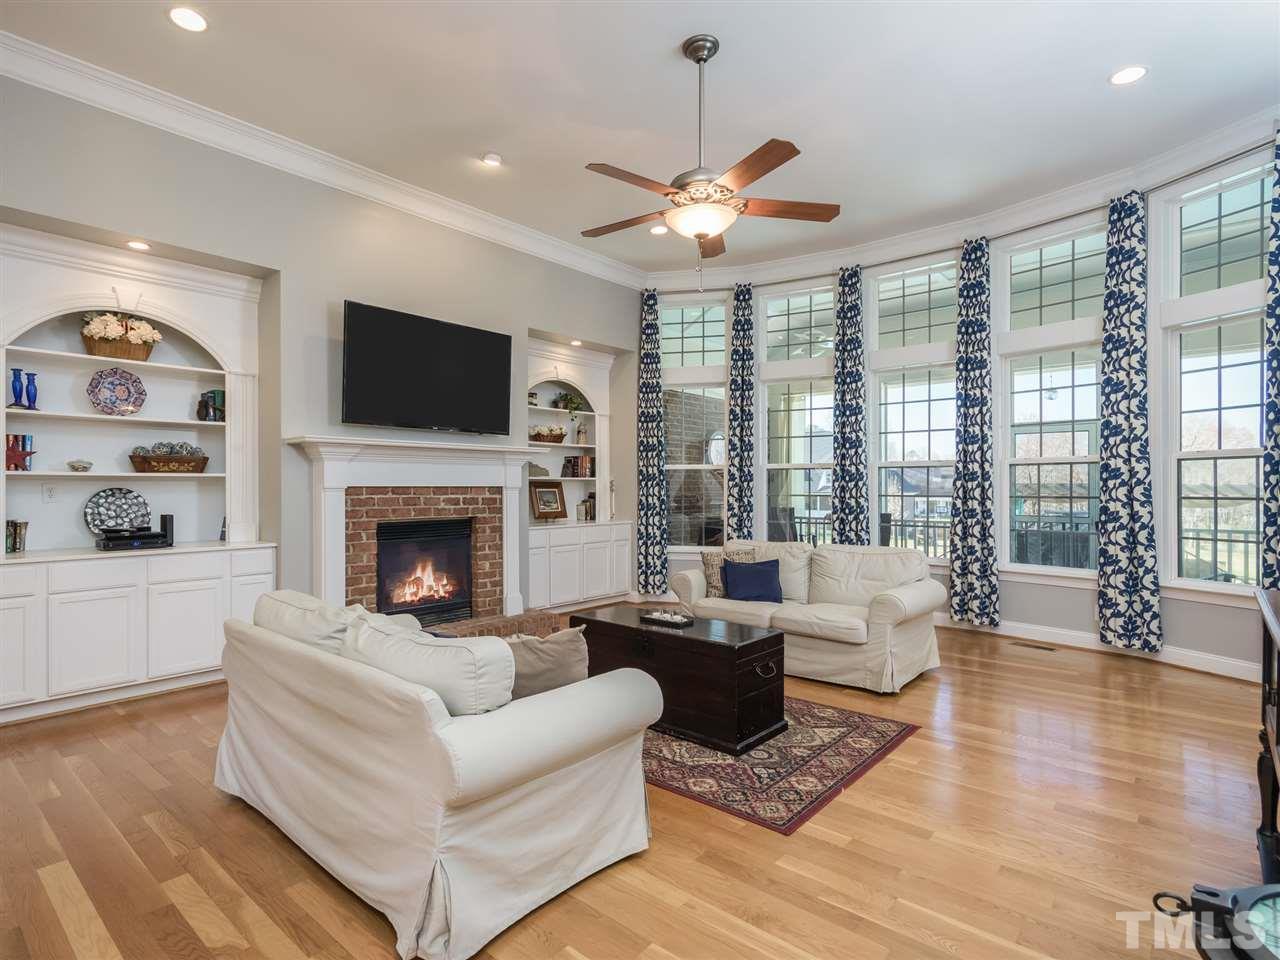 The fireplace is flanked by twin bookcases and features a raised hearth and gas logs.